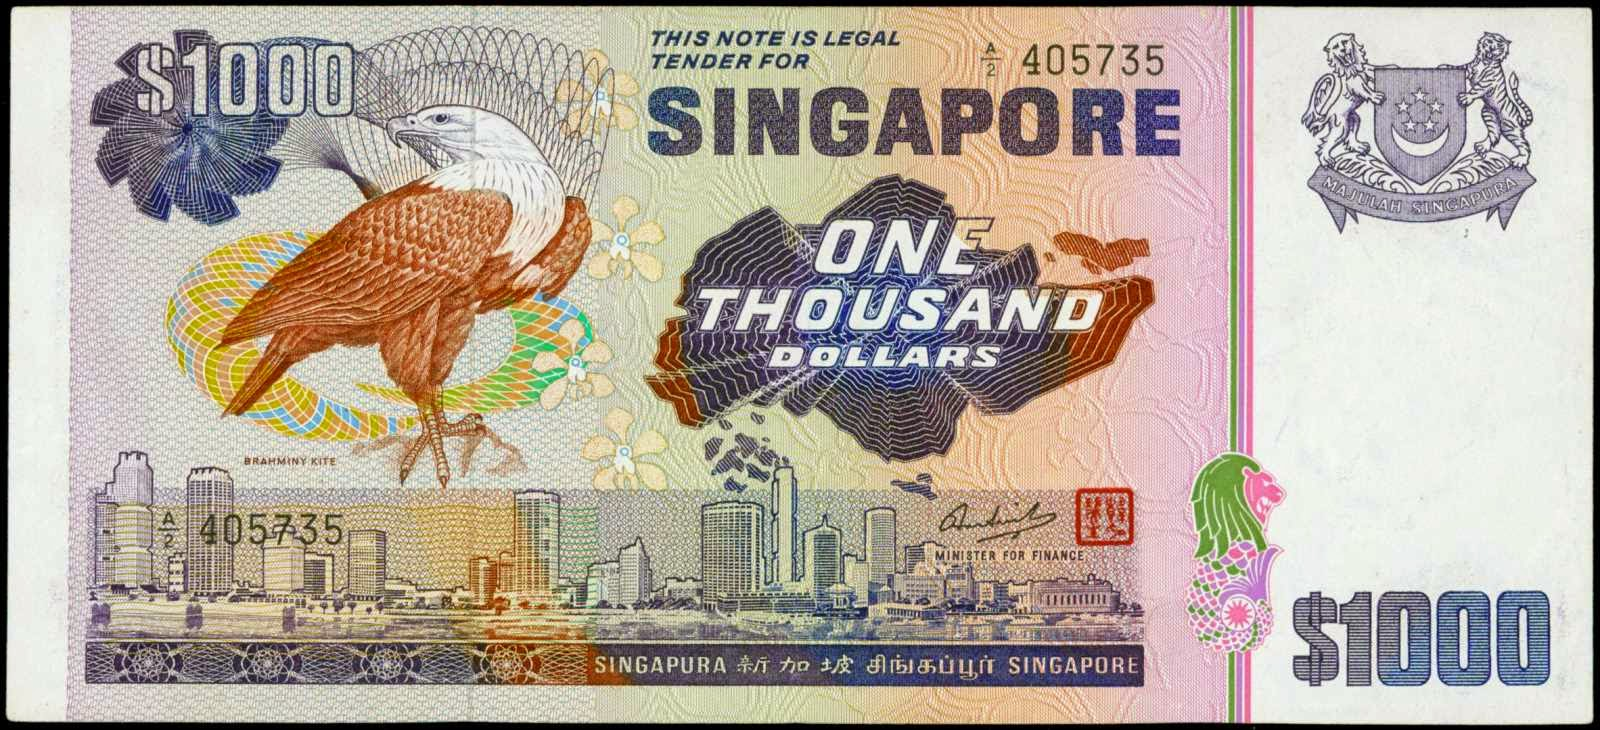 Singapore currency notes 1000 Dollars banknote Bird Series